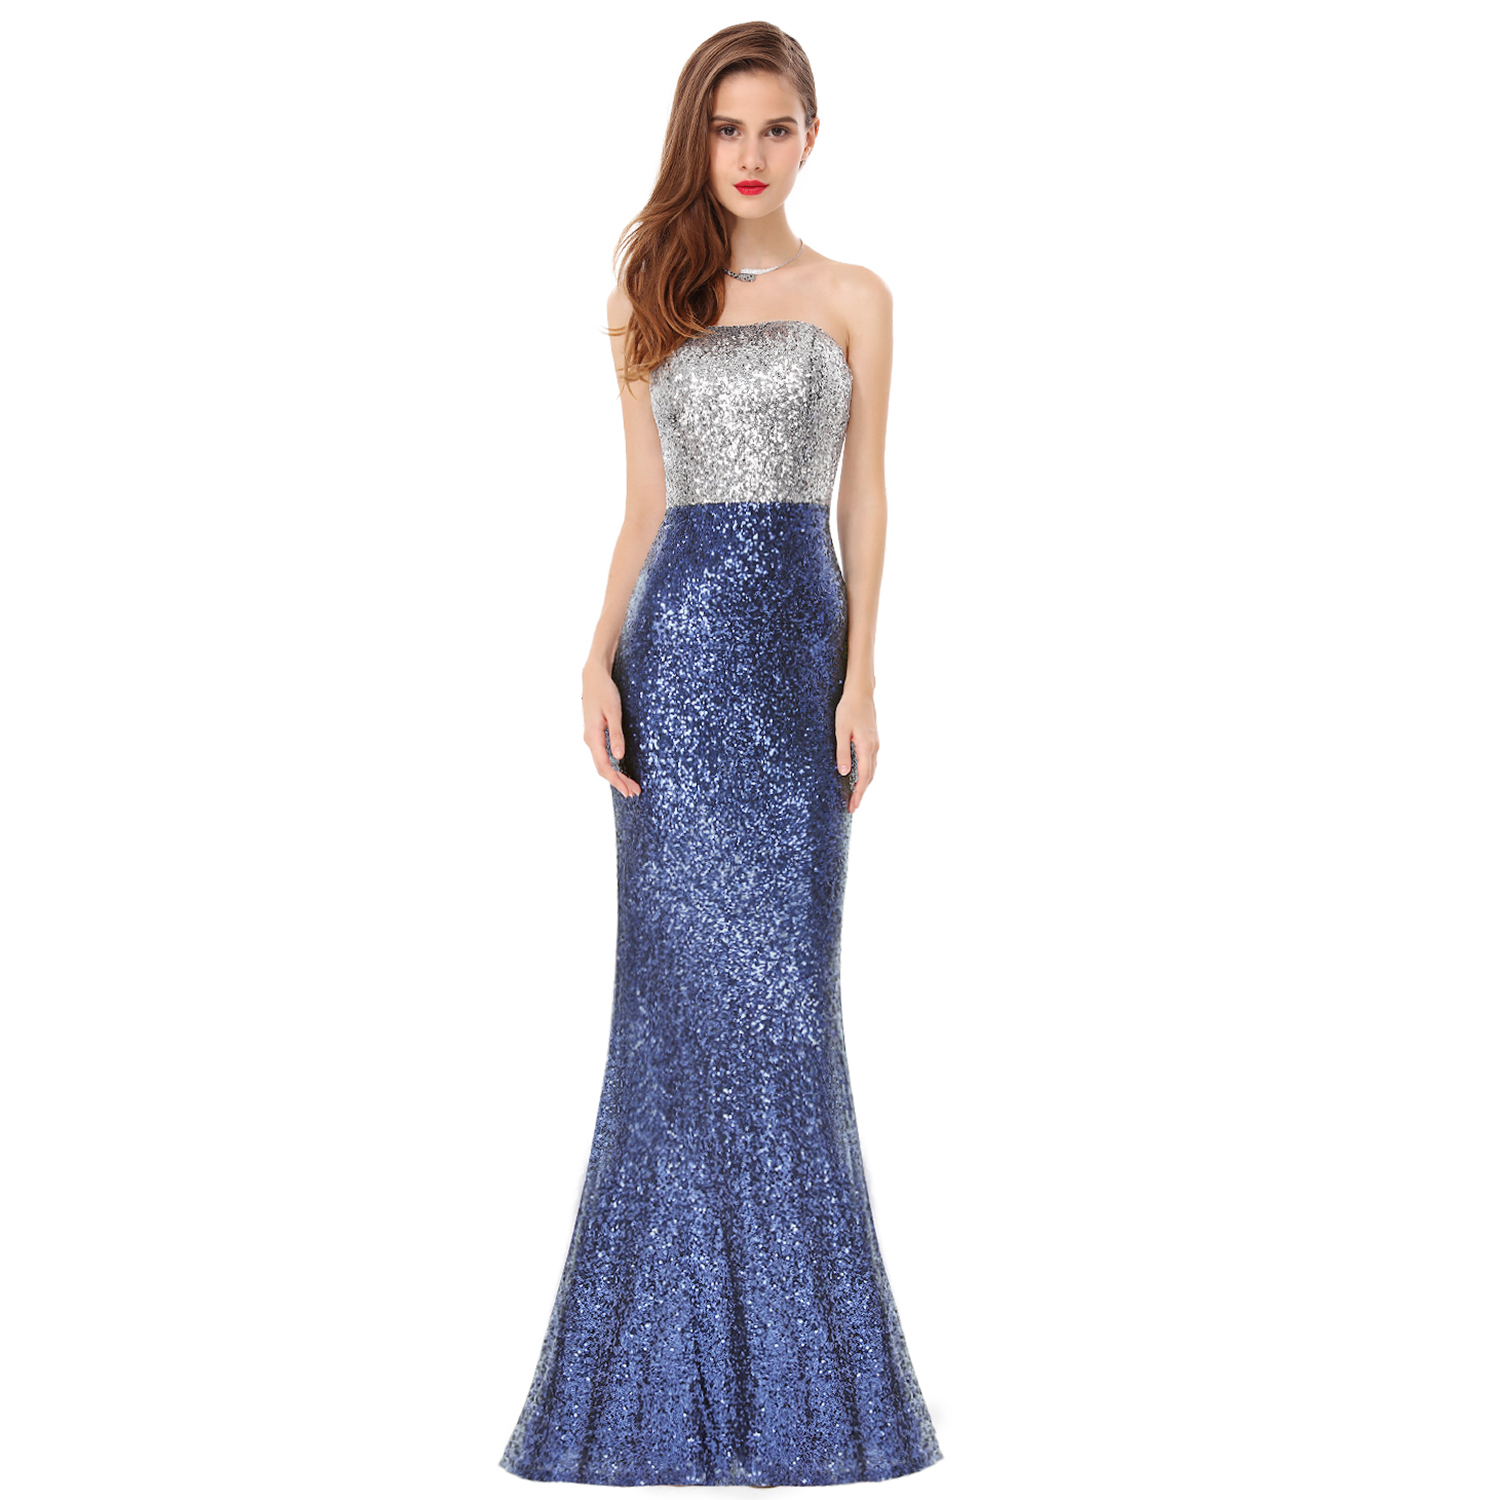 Ever-Pretty 2017 Mermaid Prom Dress Pageant Party Dresses Evening ...